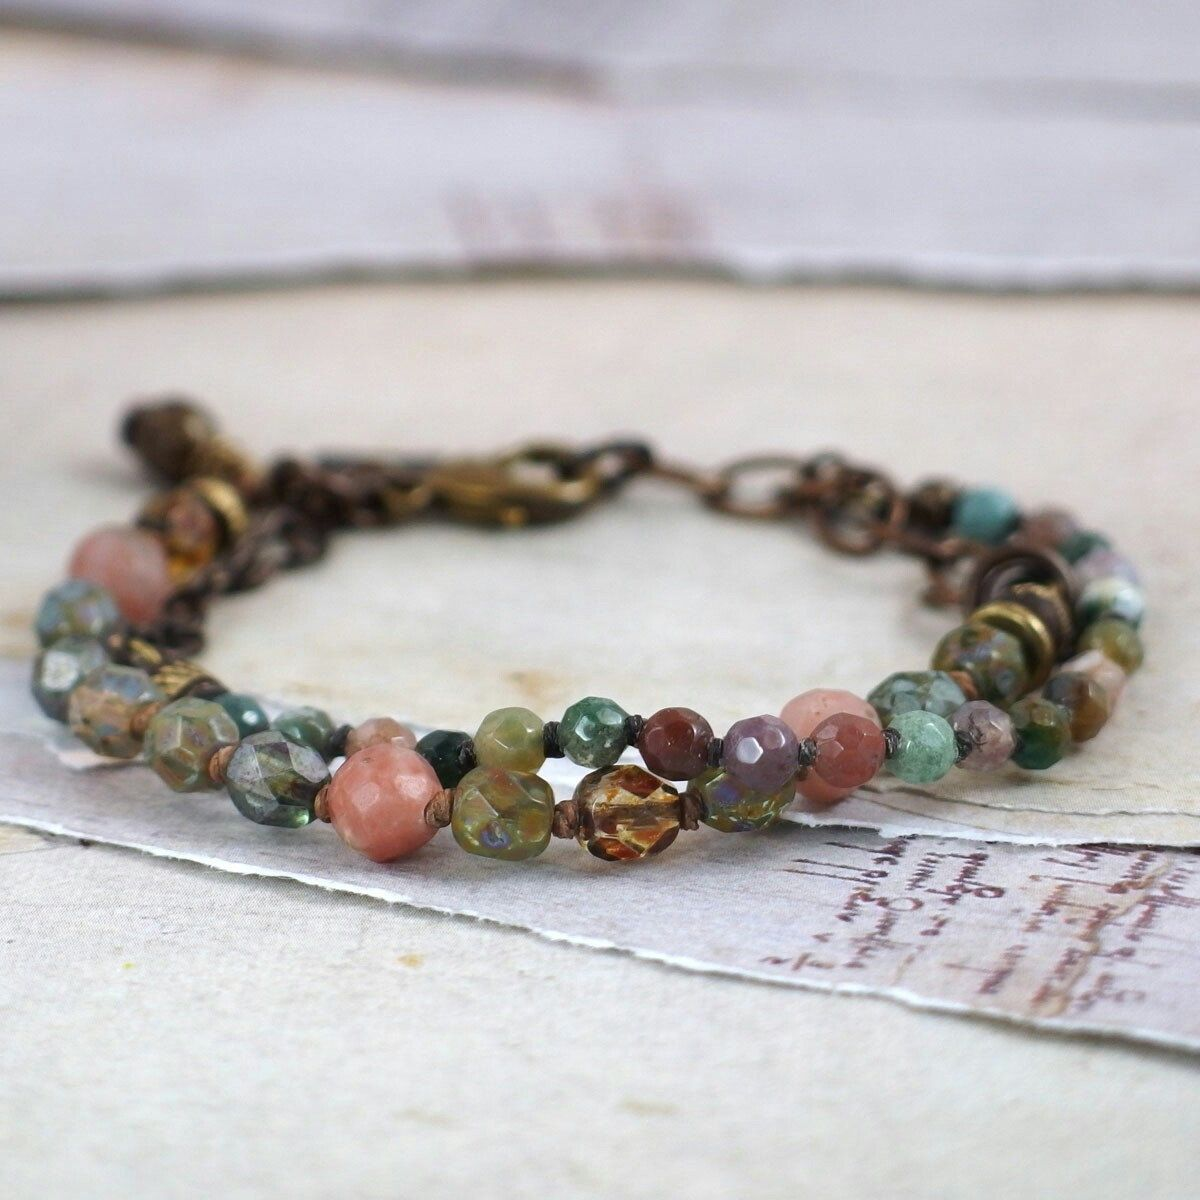 This beautiful bracelet reminds me of a flower garden!